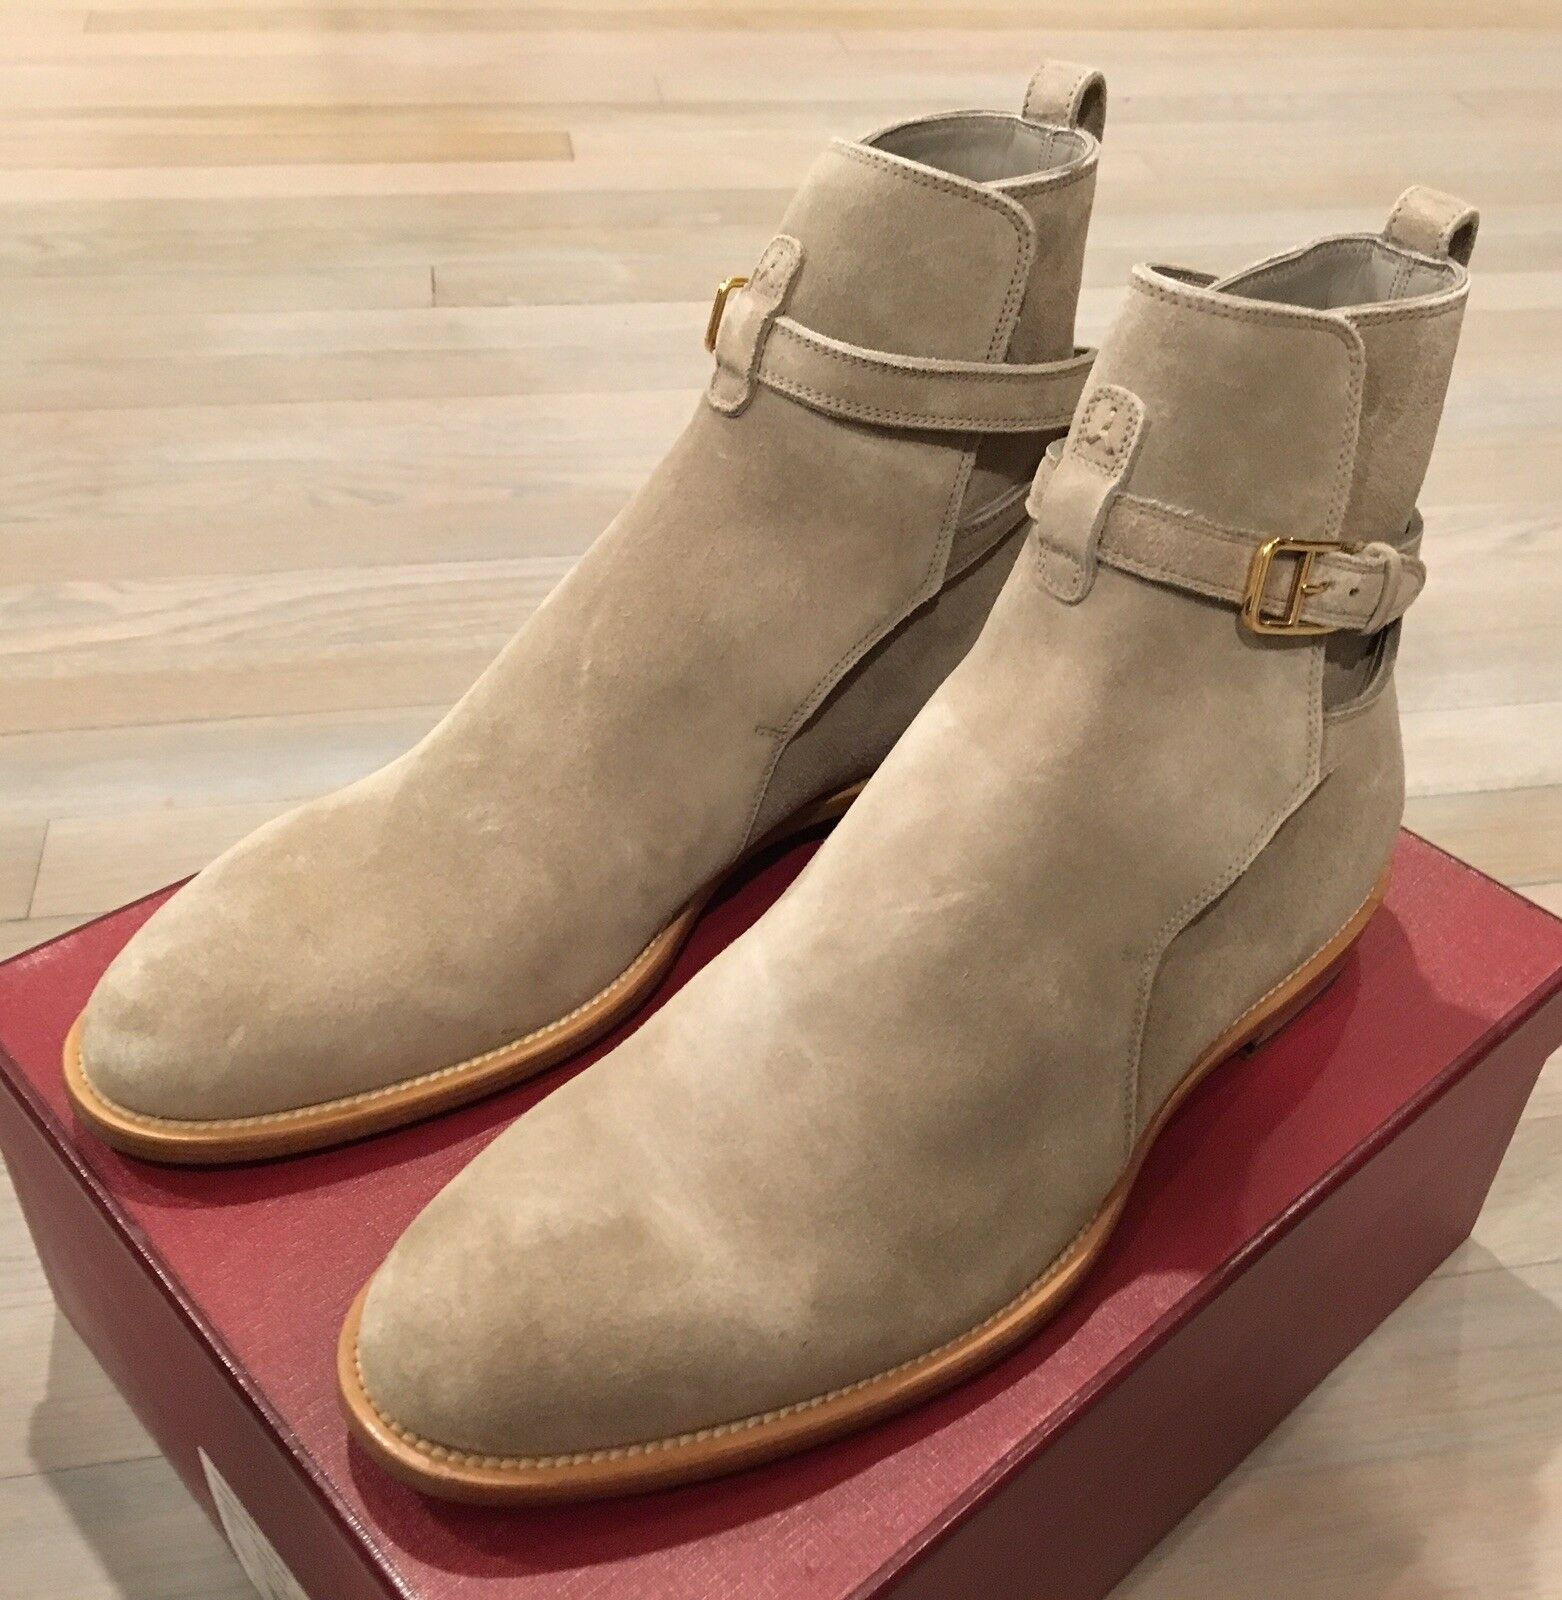 1,000  Bally Hobston Tan Suede Ankle Boots Size US 12 Made in Switzerland